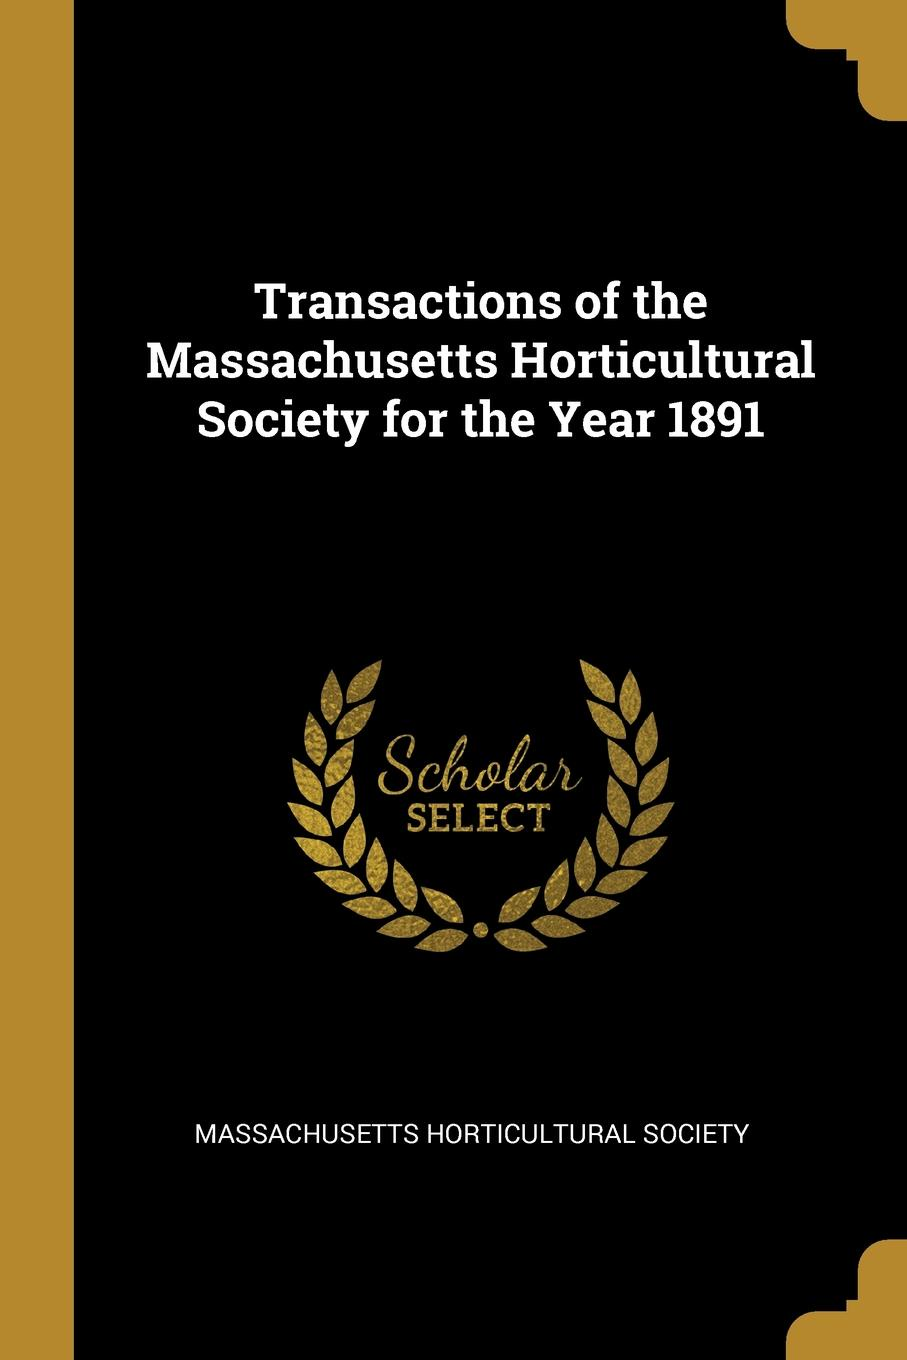 Massachusetts Horticultural Society Transactions of the Massachusetts Horticultural Society for the Year 1891